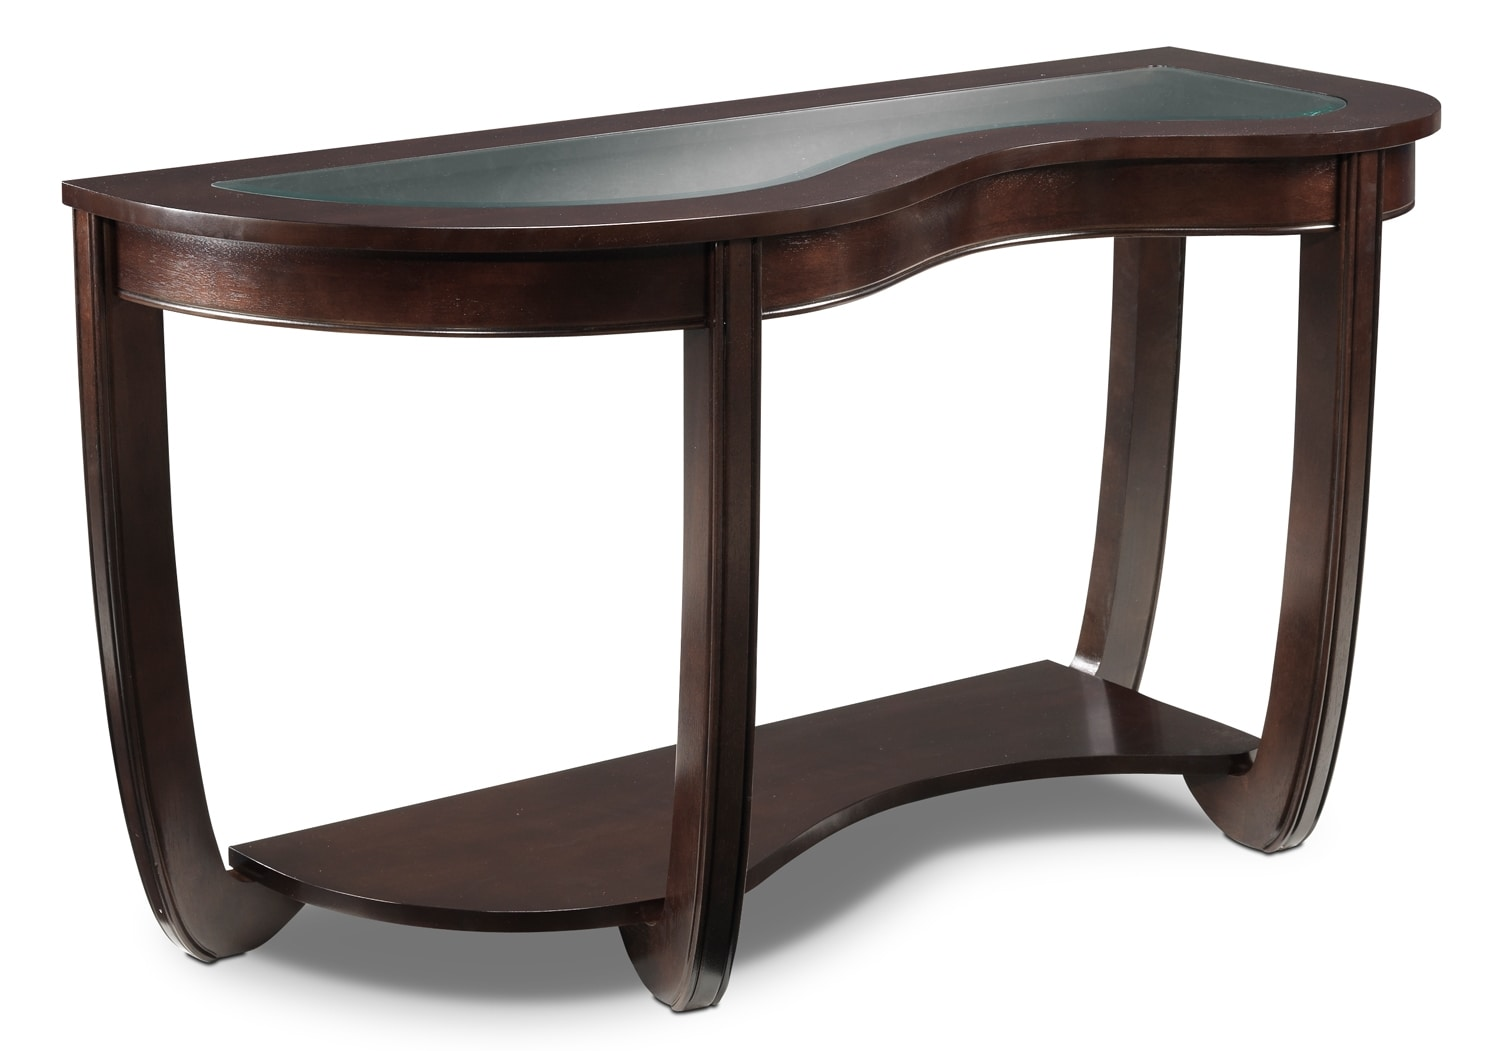 Kitson Sofa Table - Cherry